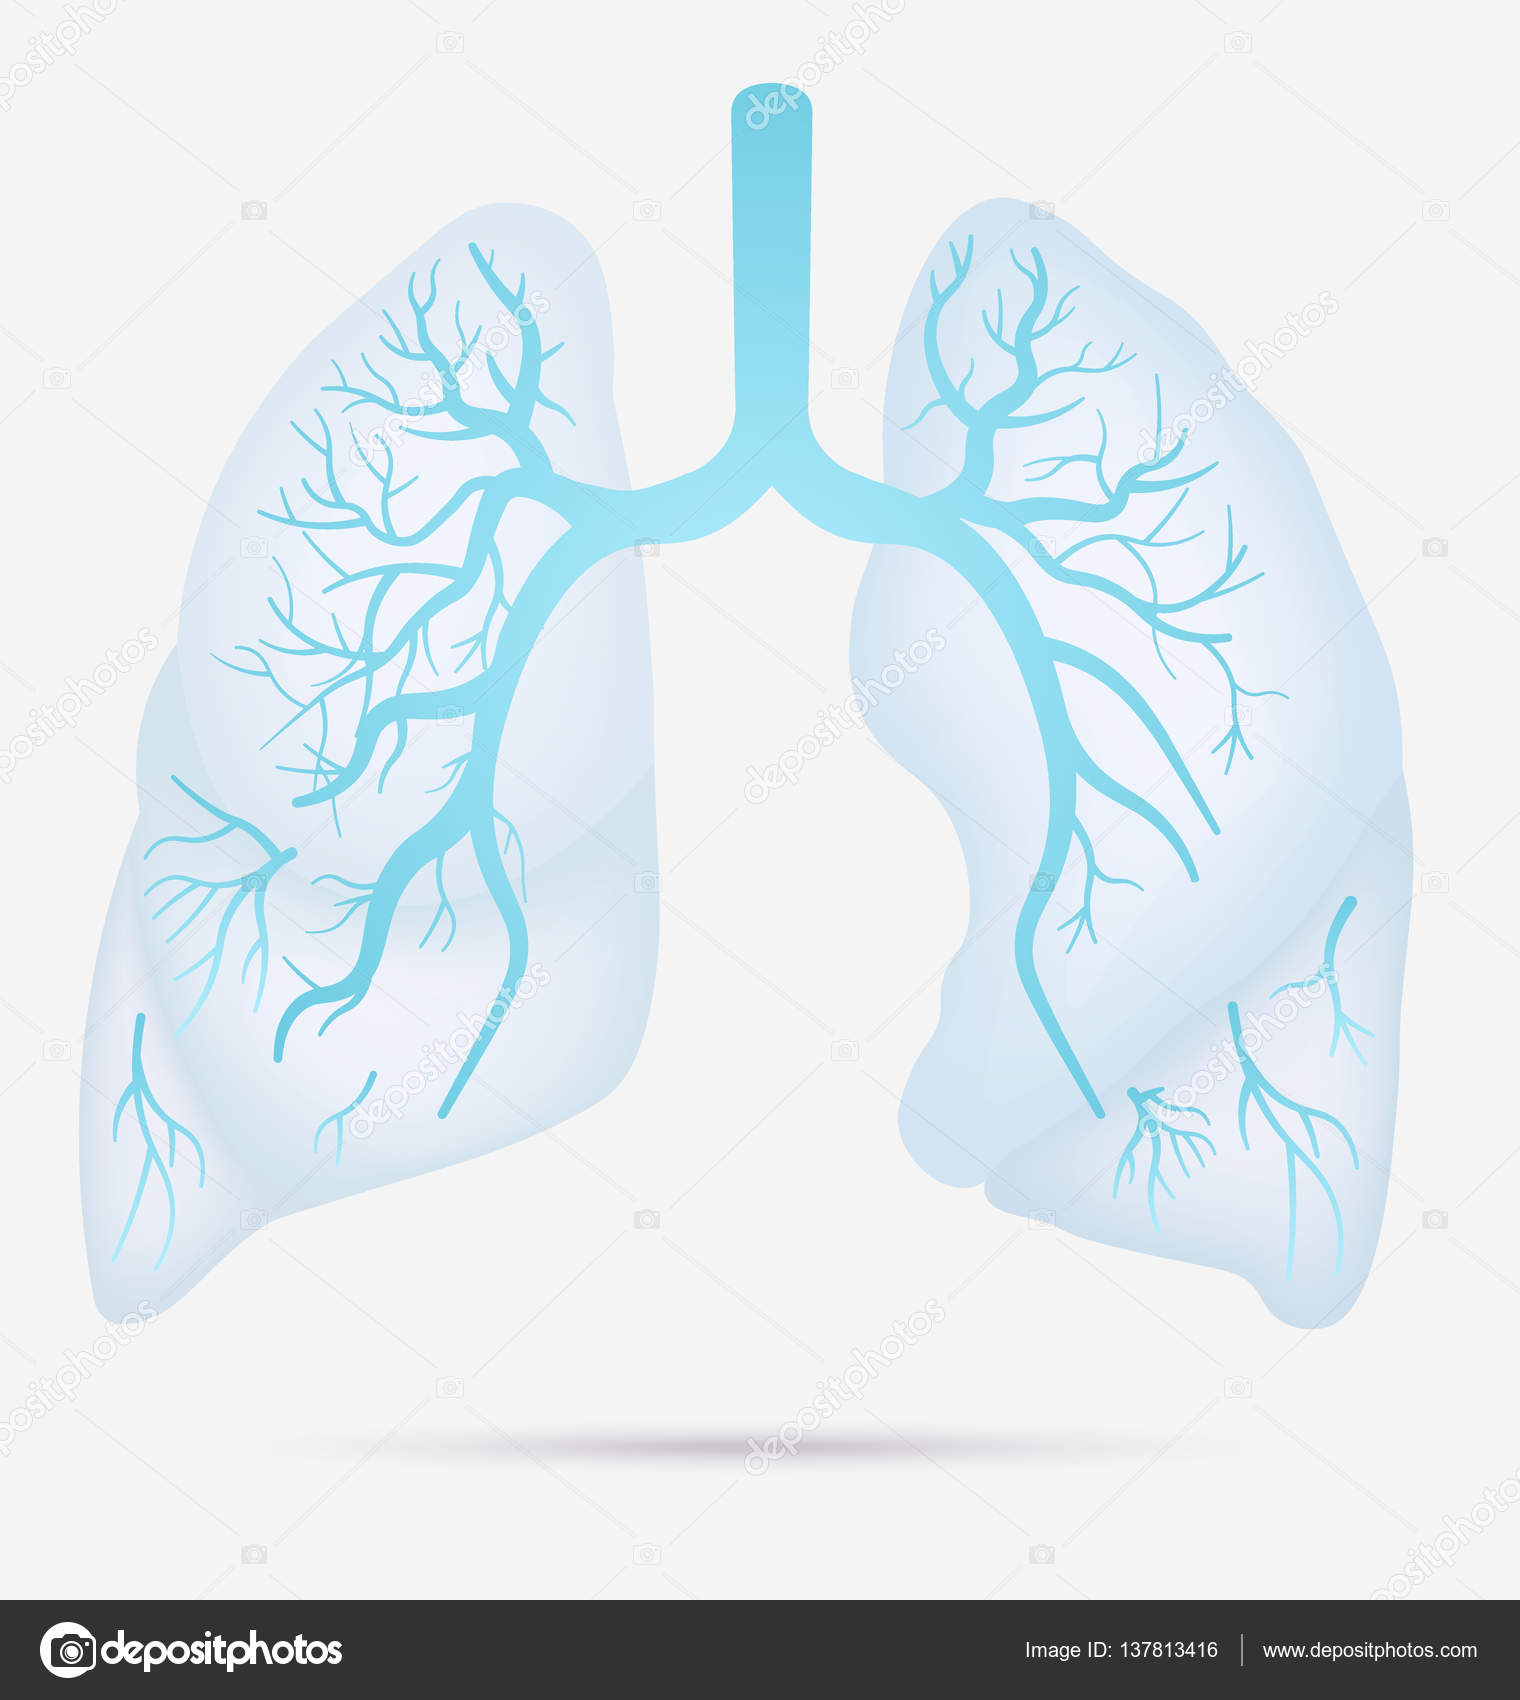 hight resolution of human lungs anatomy for asthma tuberculosis pneumonia lung cancer diagram in detail illustration